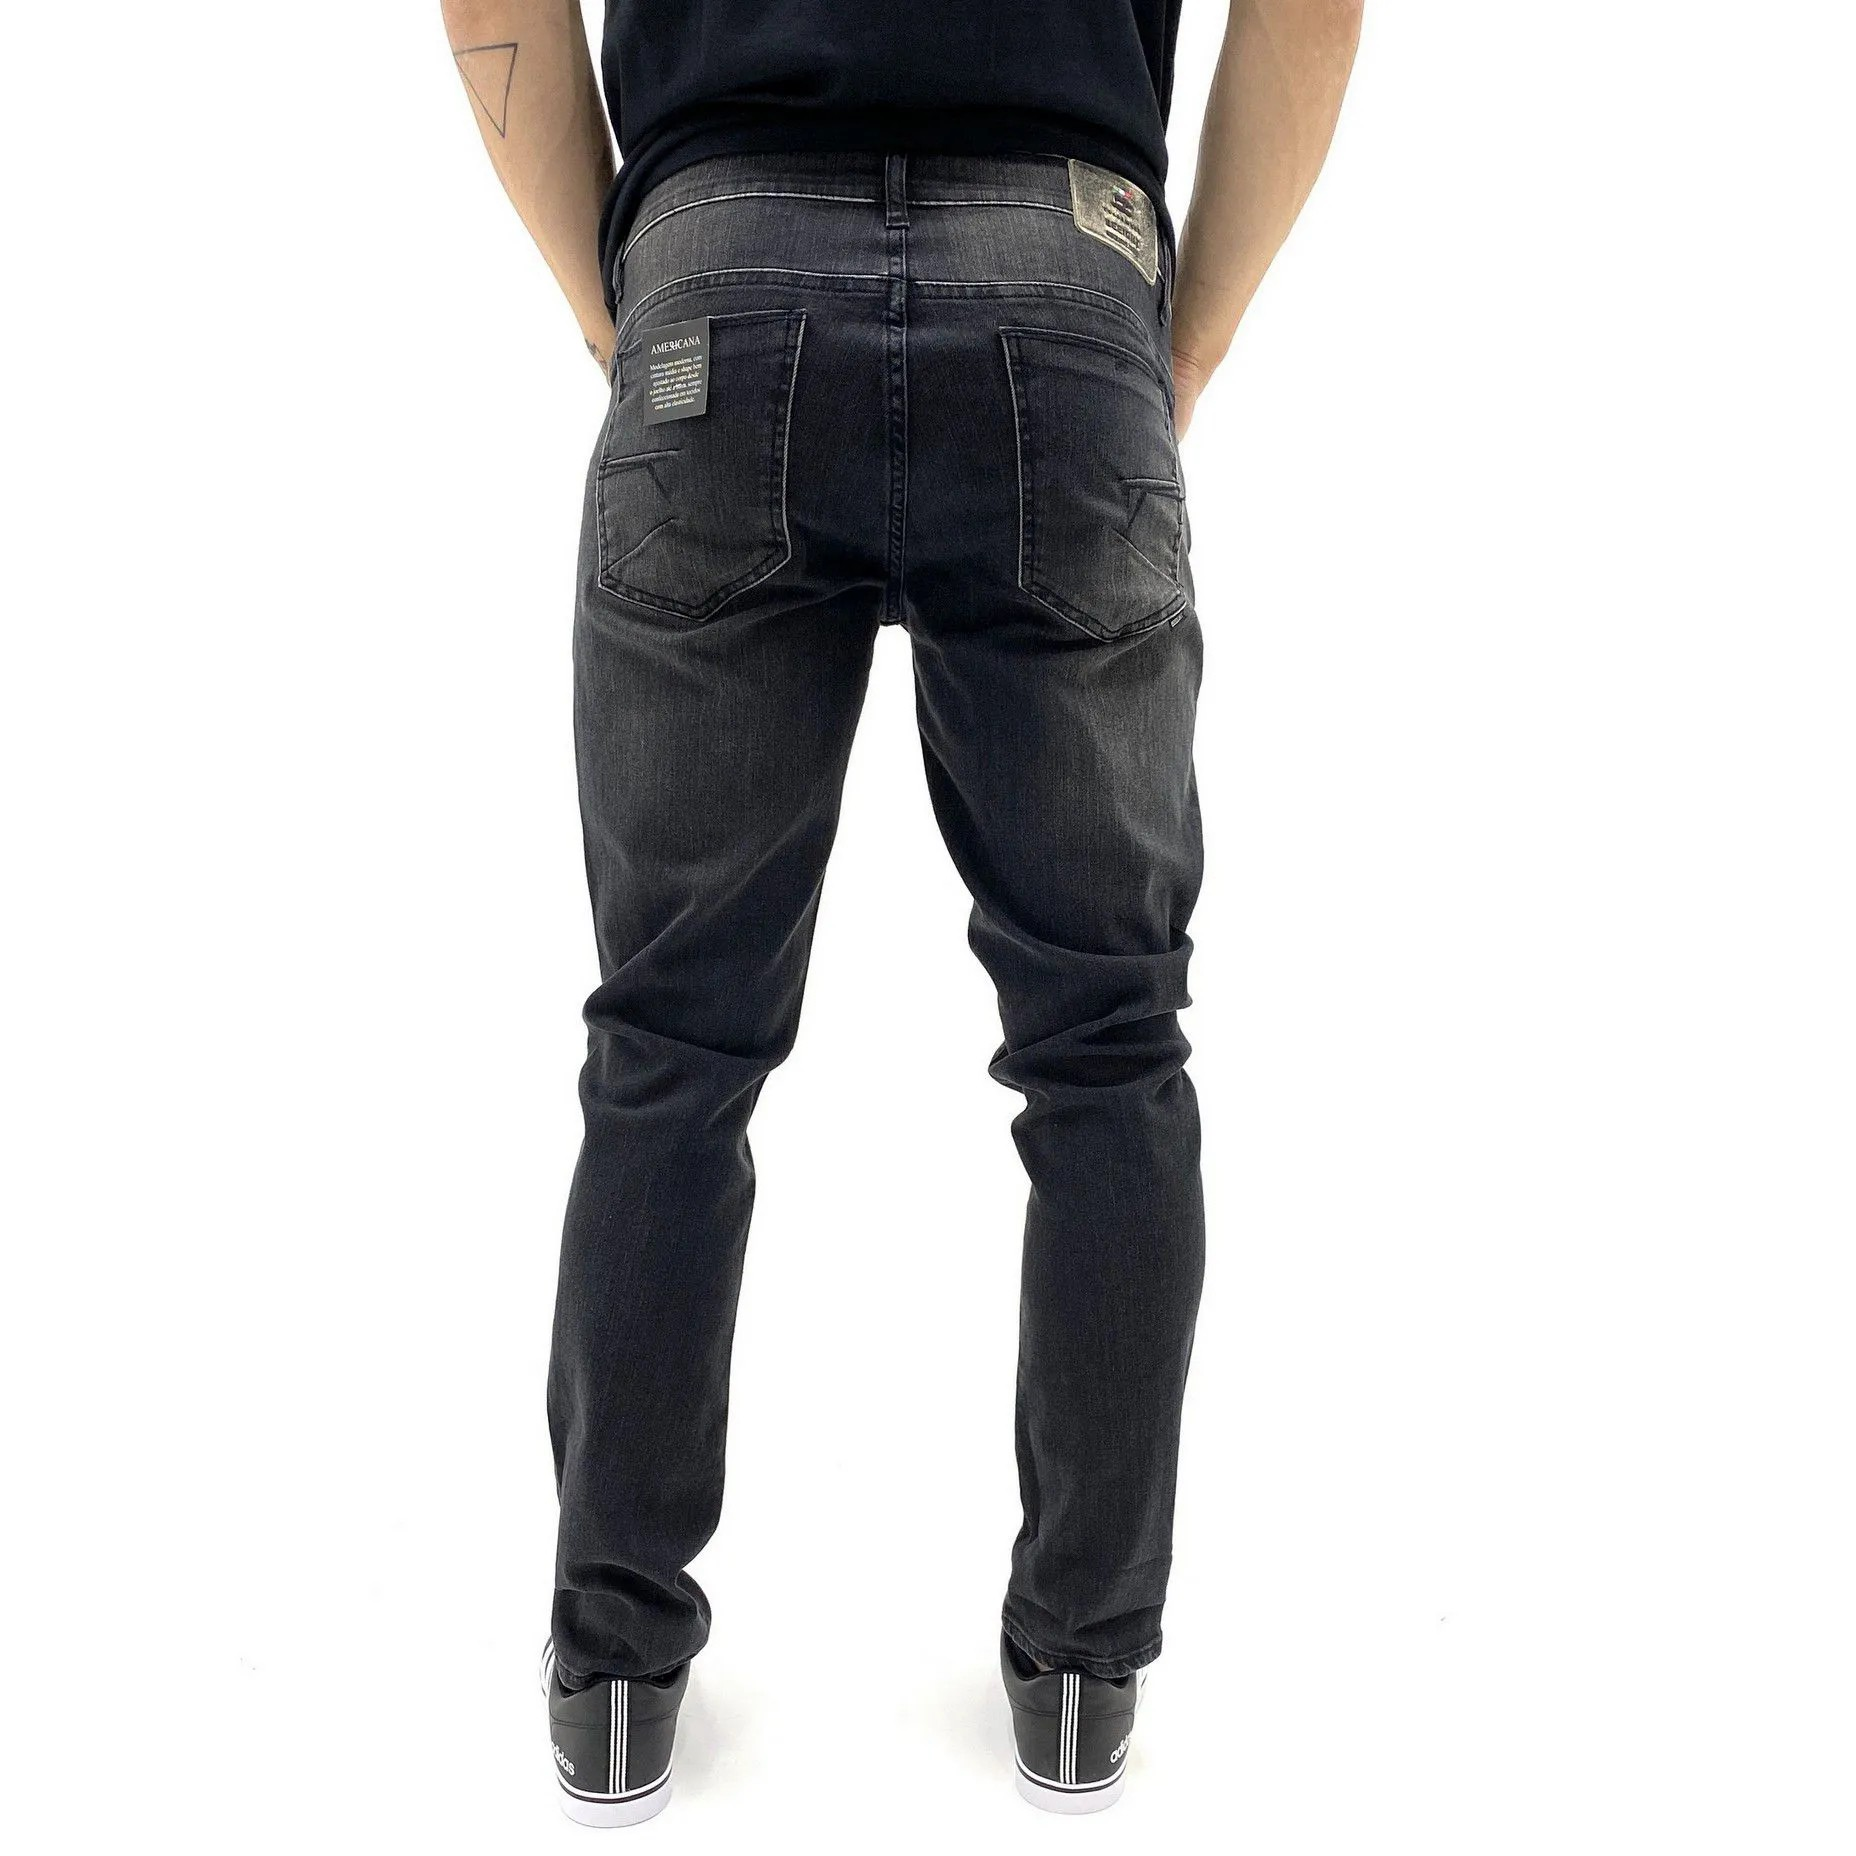 CALÇA JEANS SKINNY BE EIGHT DESTROYED   JEANS ESCURO MASCULINO